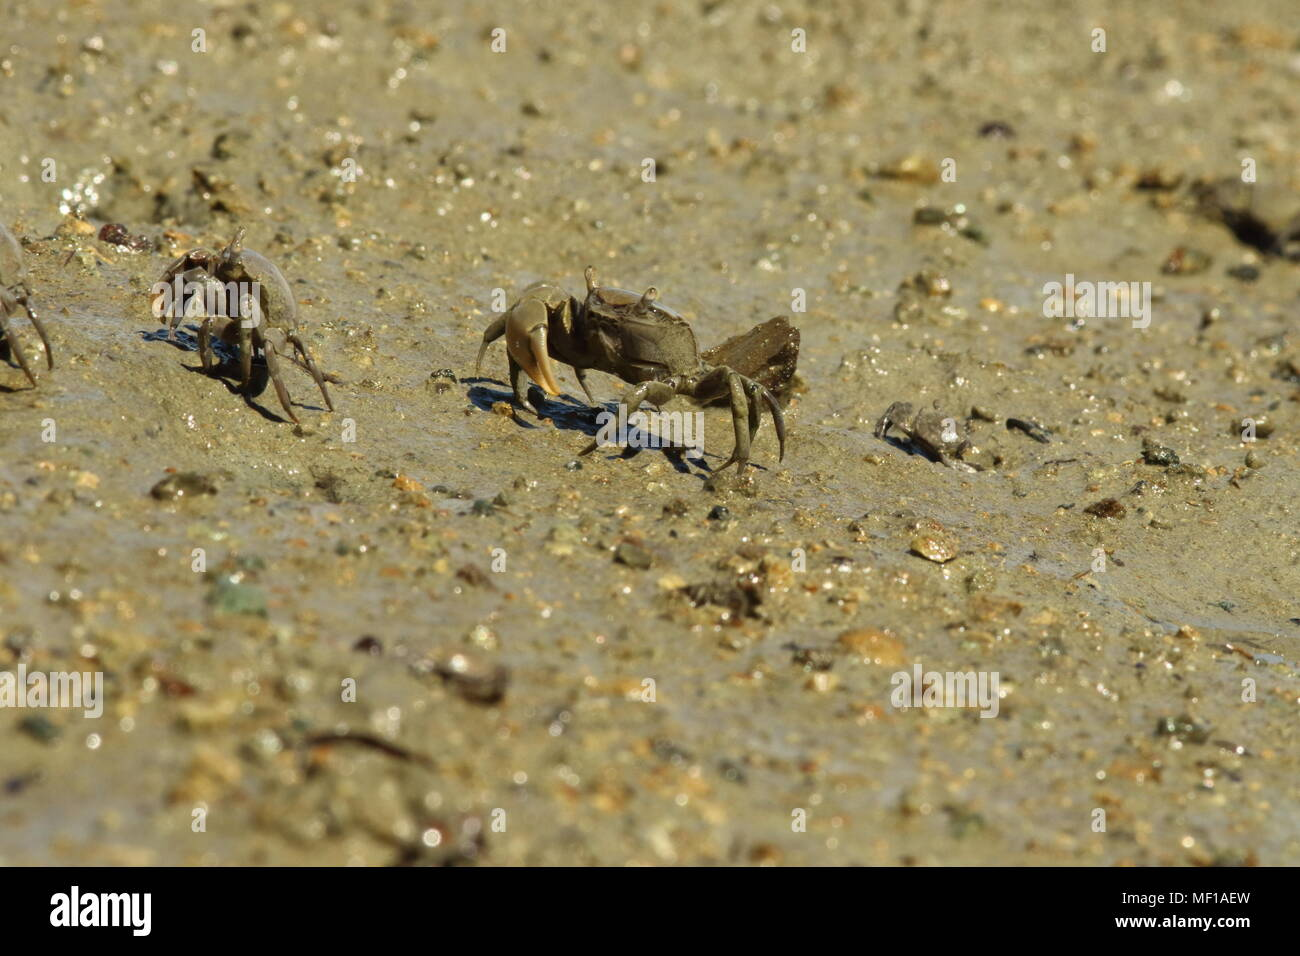 Varunidae Helice, Estuarine Mud Crab, the main crab has lost one off its claws. - Stock Image